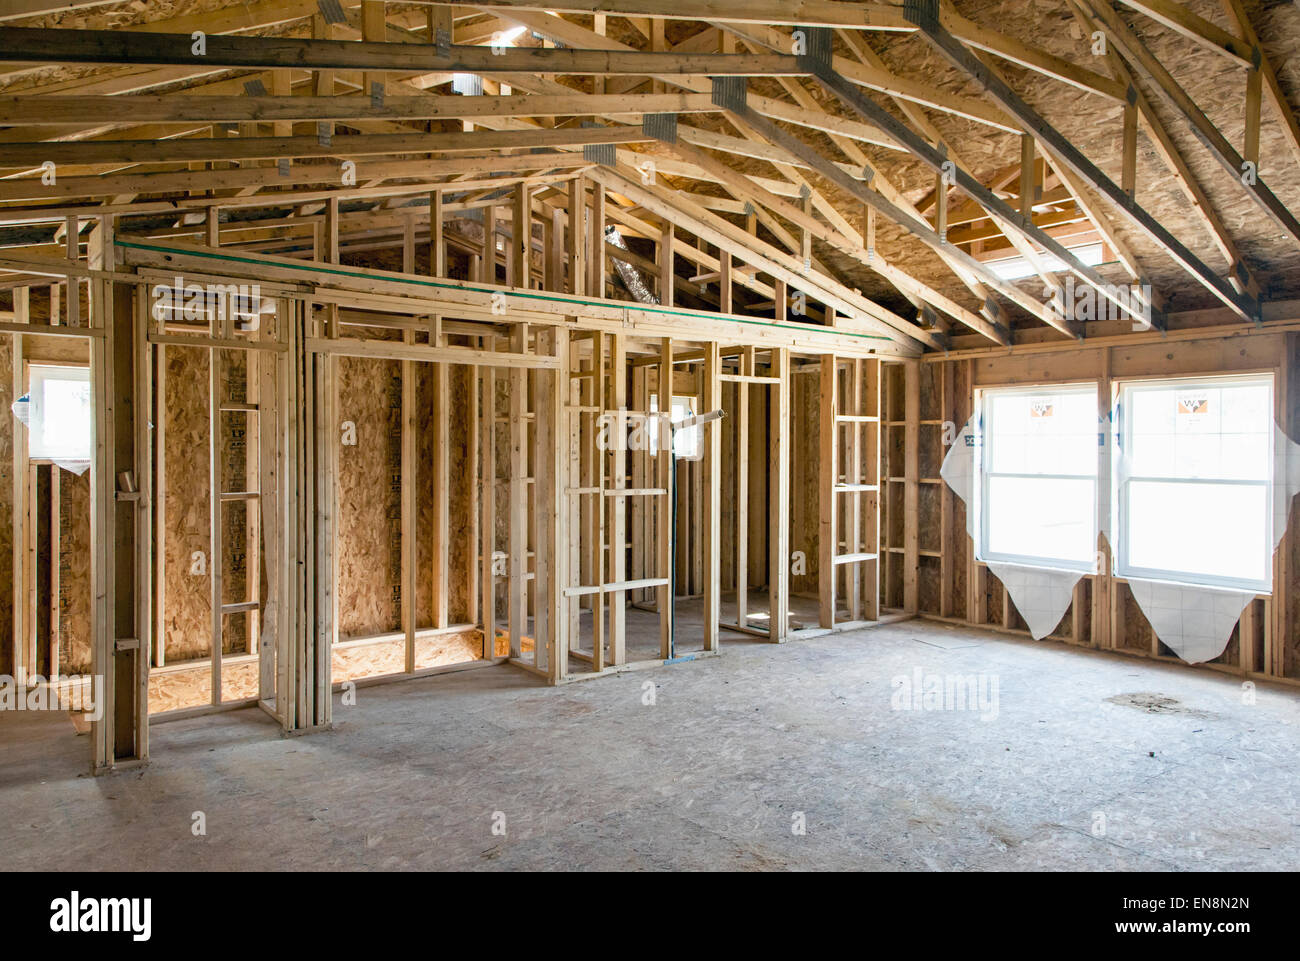 Wall Framing interior wall framing construction craftsman stock photos